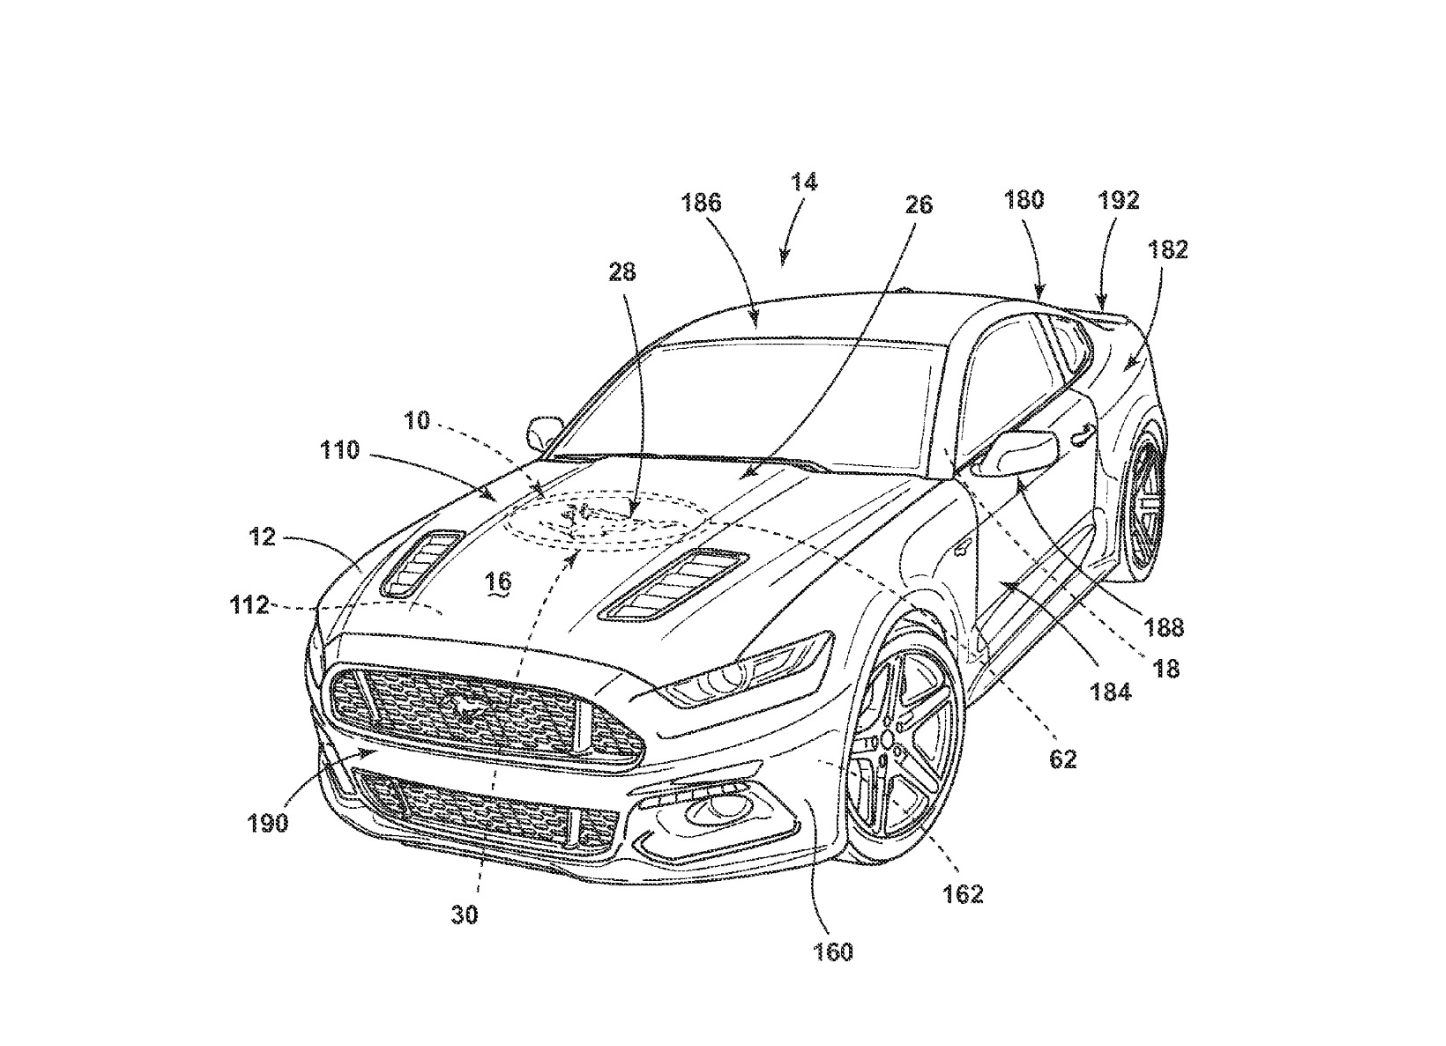 Ford Patent Could Mean Cars Can Change Their Spots But